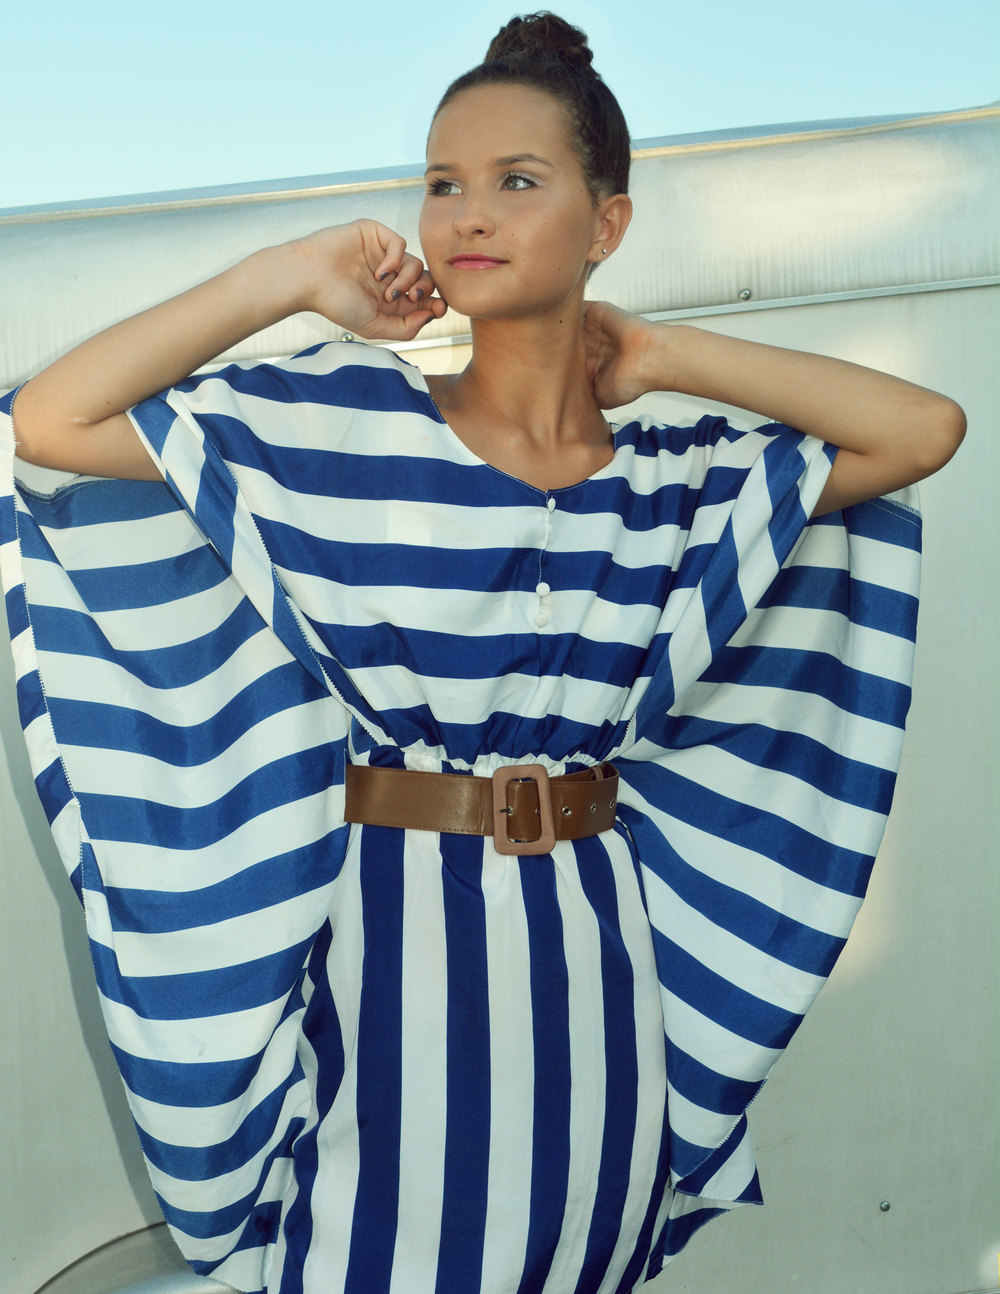 BLue-and-White-Striped-Dress_Abby_Genysis-Salon-WEB.jpg